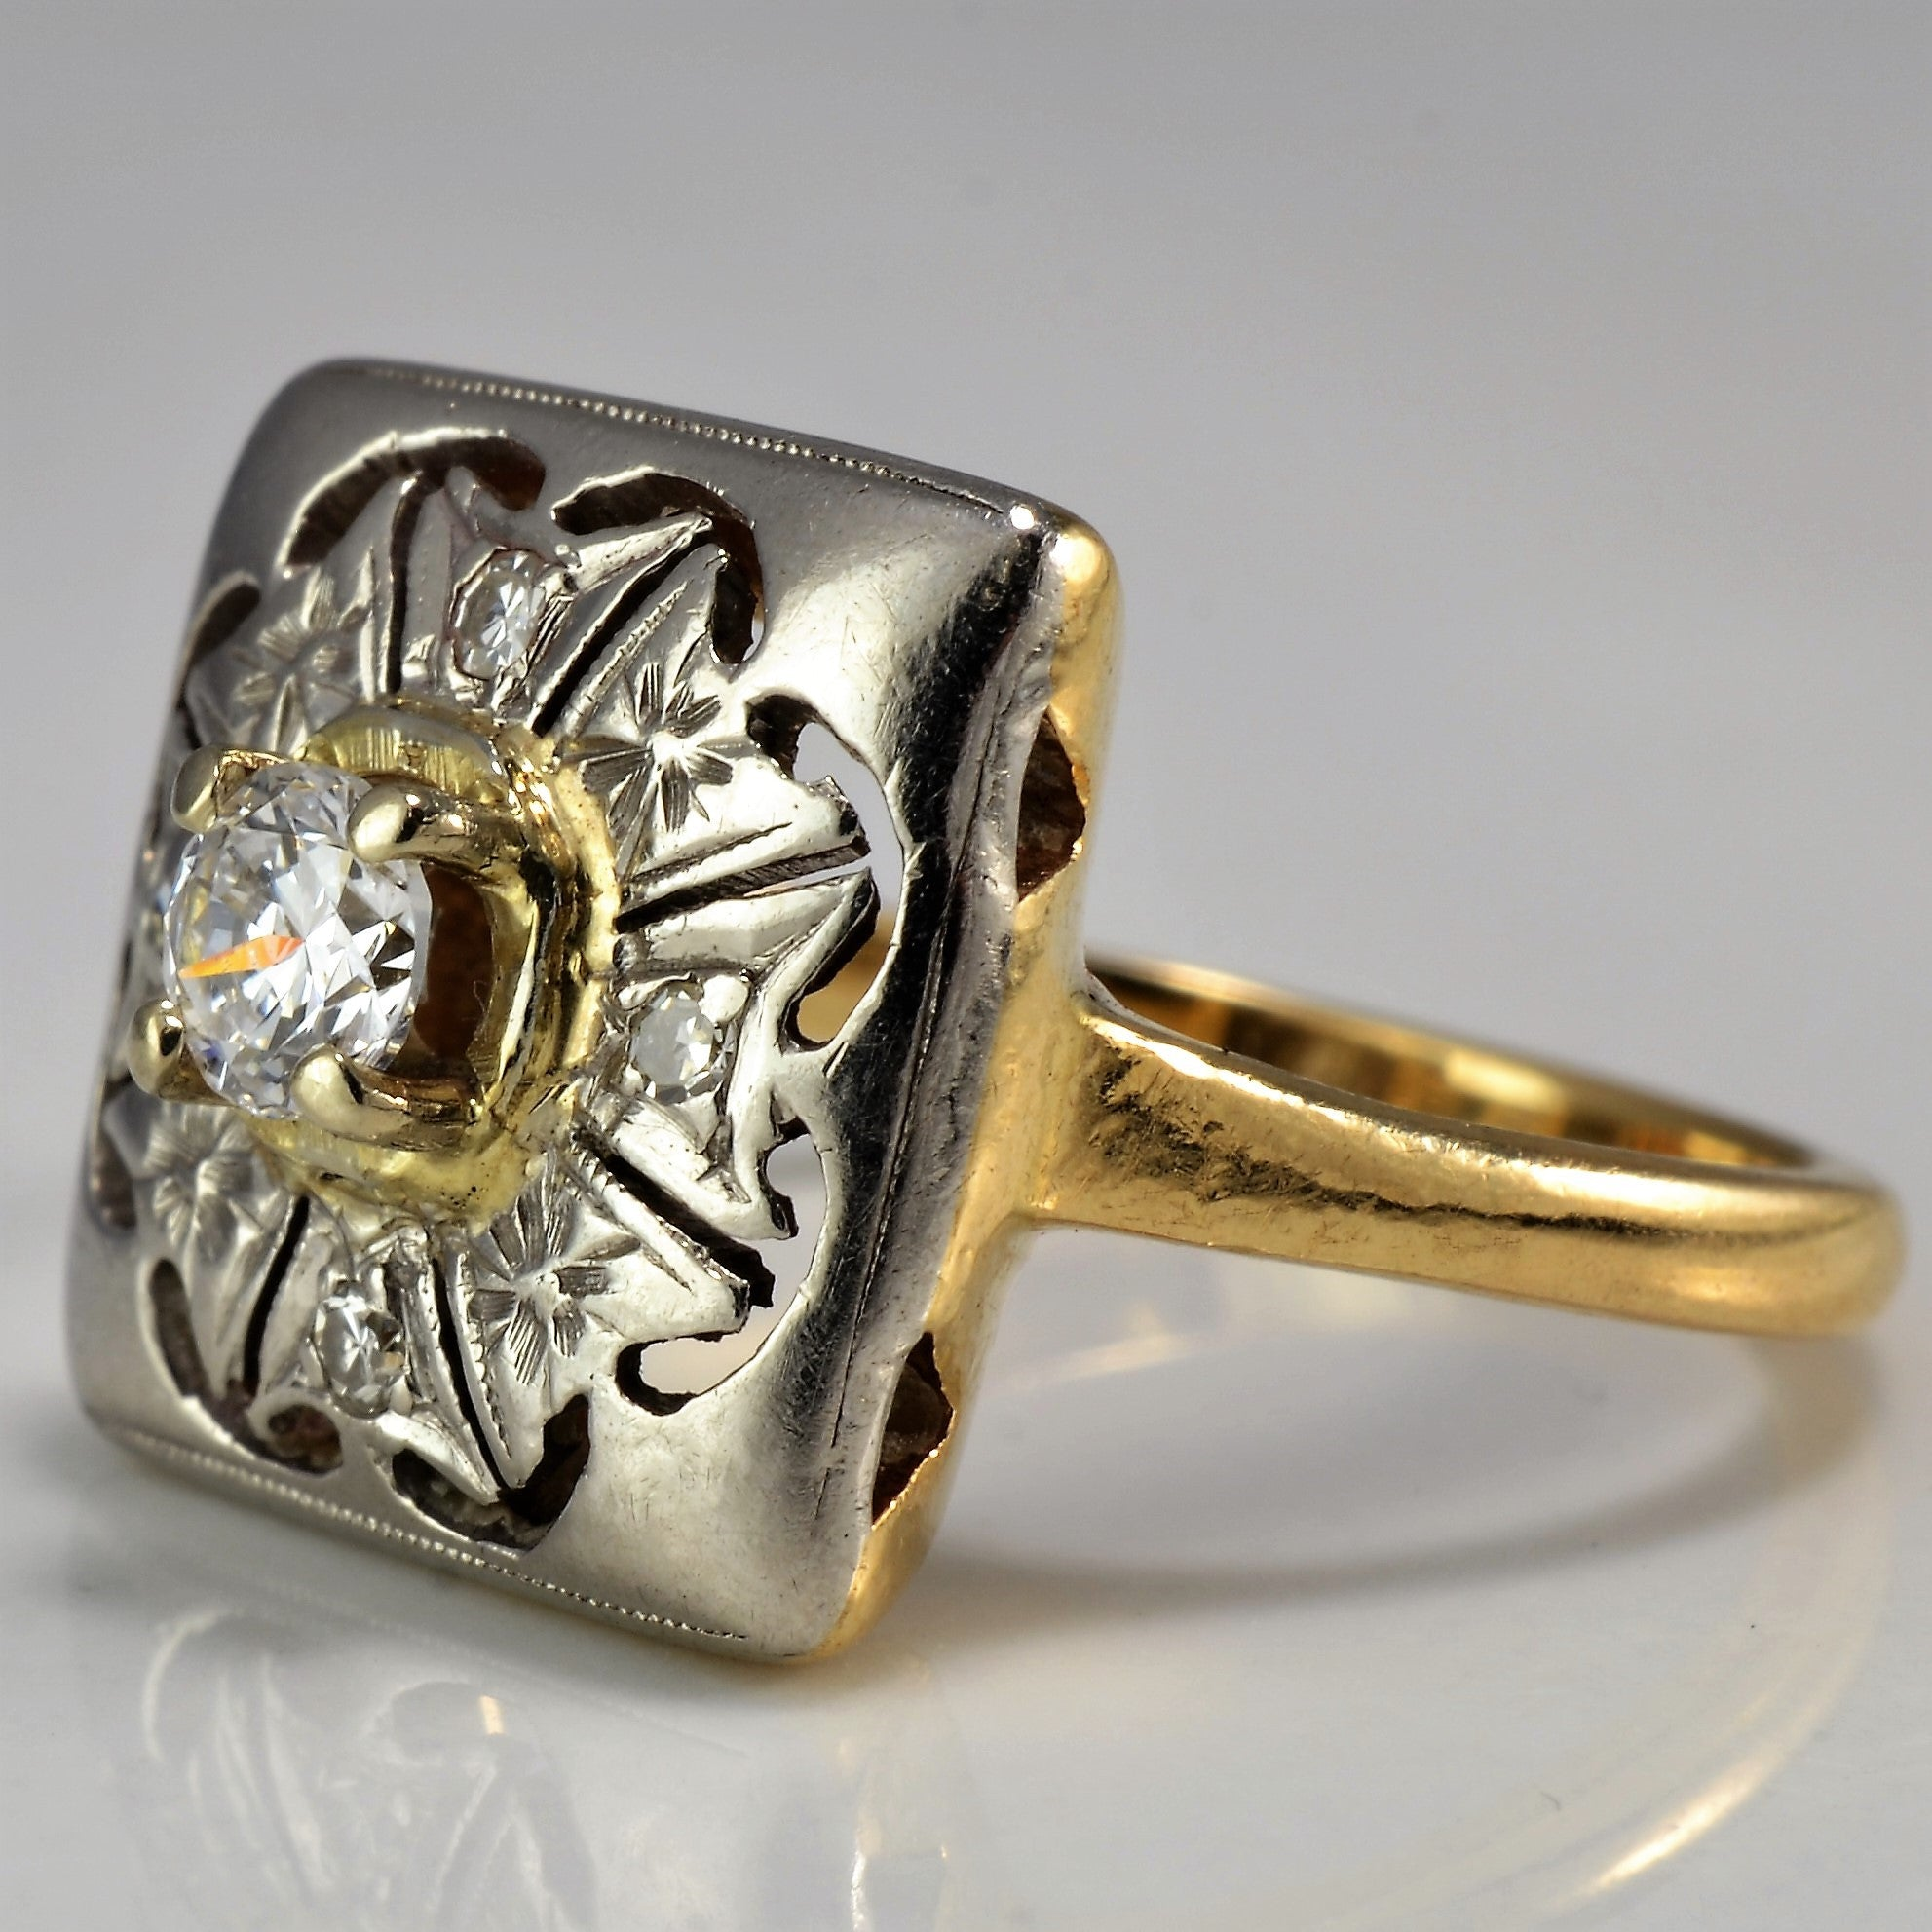 Intricate Art Deco Engagement Ring | 0.26 ctw, SZ 5.25 |